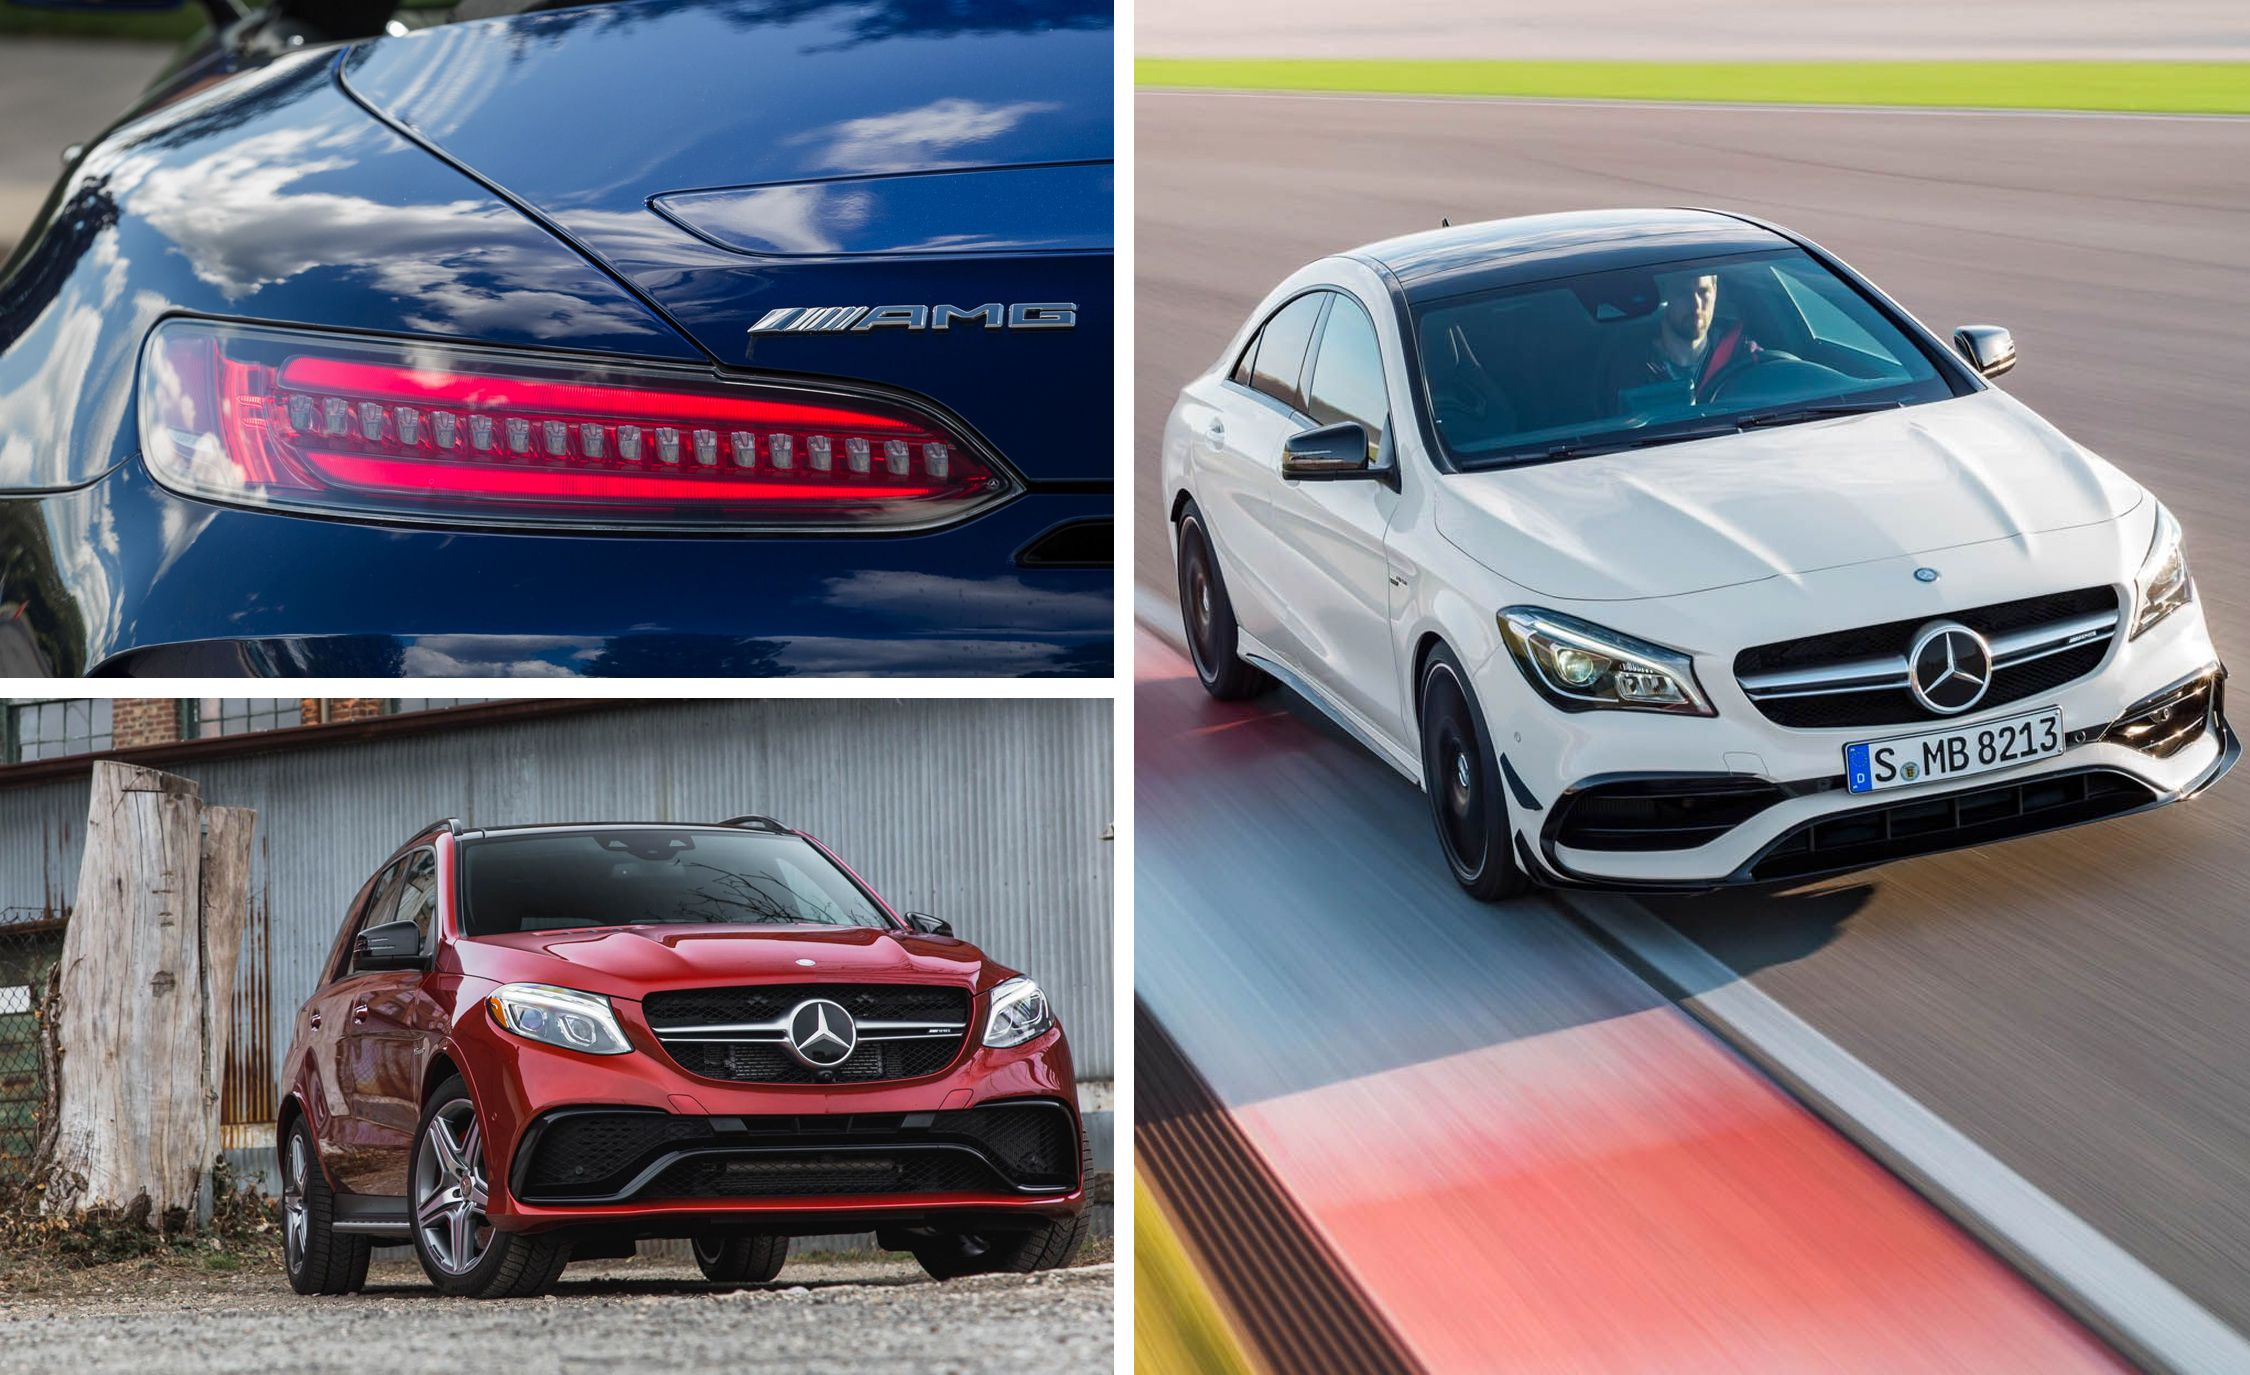 The Quickest AMG Mercedes Car and Driver Has Ever Tested